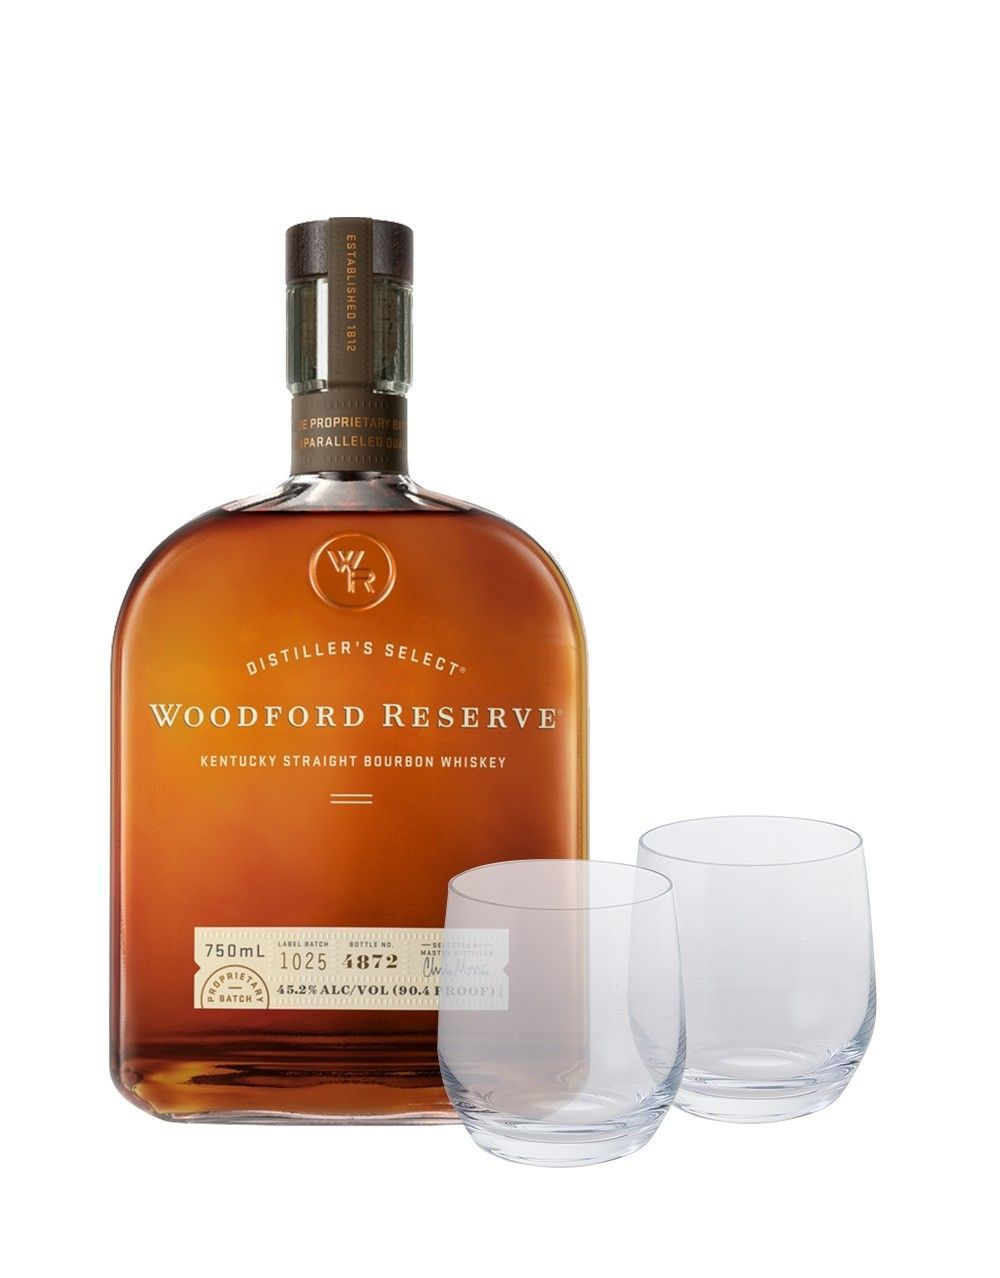 Park Art My WordPress Blog_Woodford Reserve Gift Set With Glass